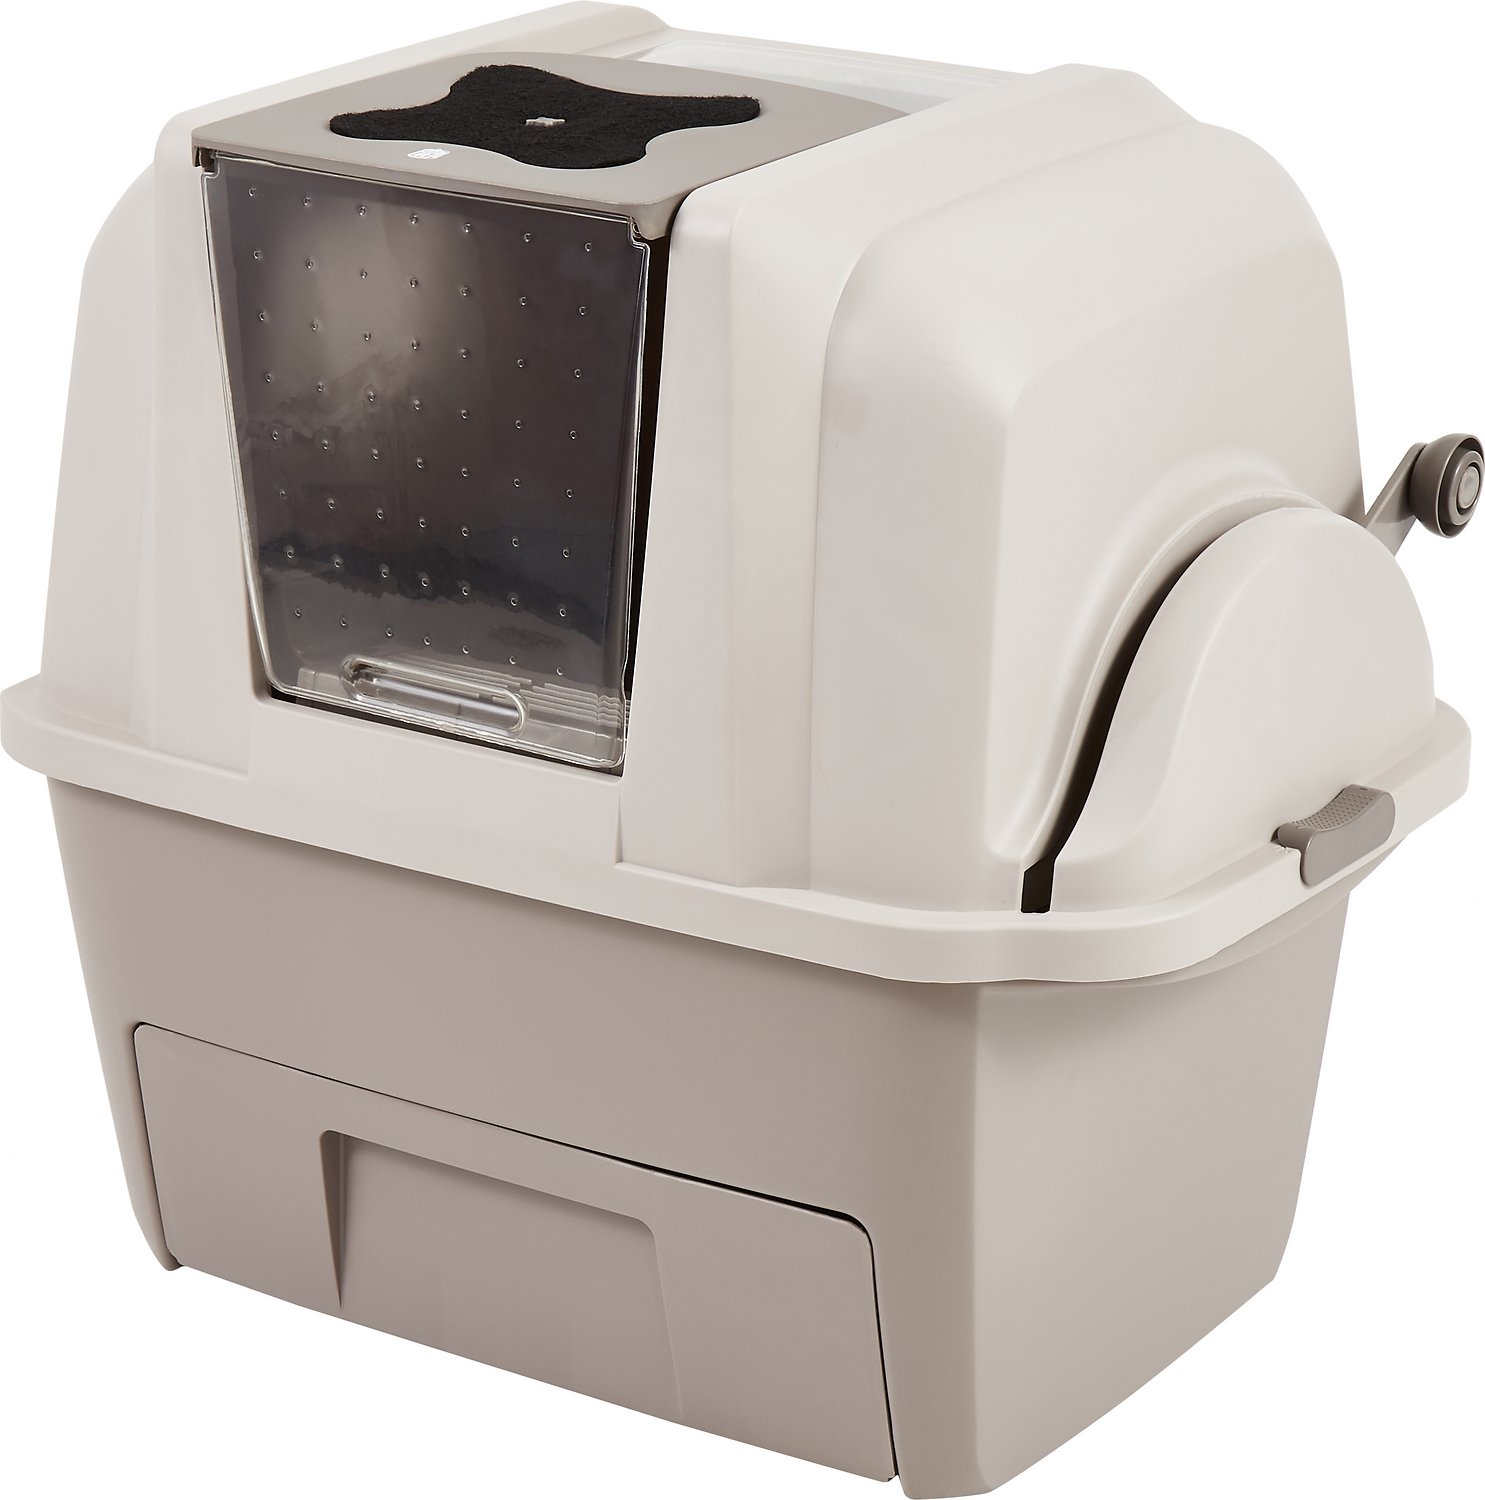 Best Automatic Litter Boxes For 2019 Based On Customer Reviews